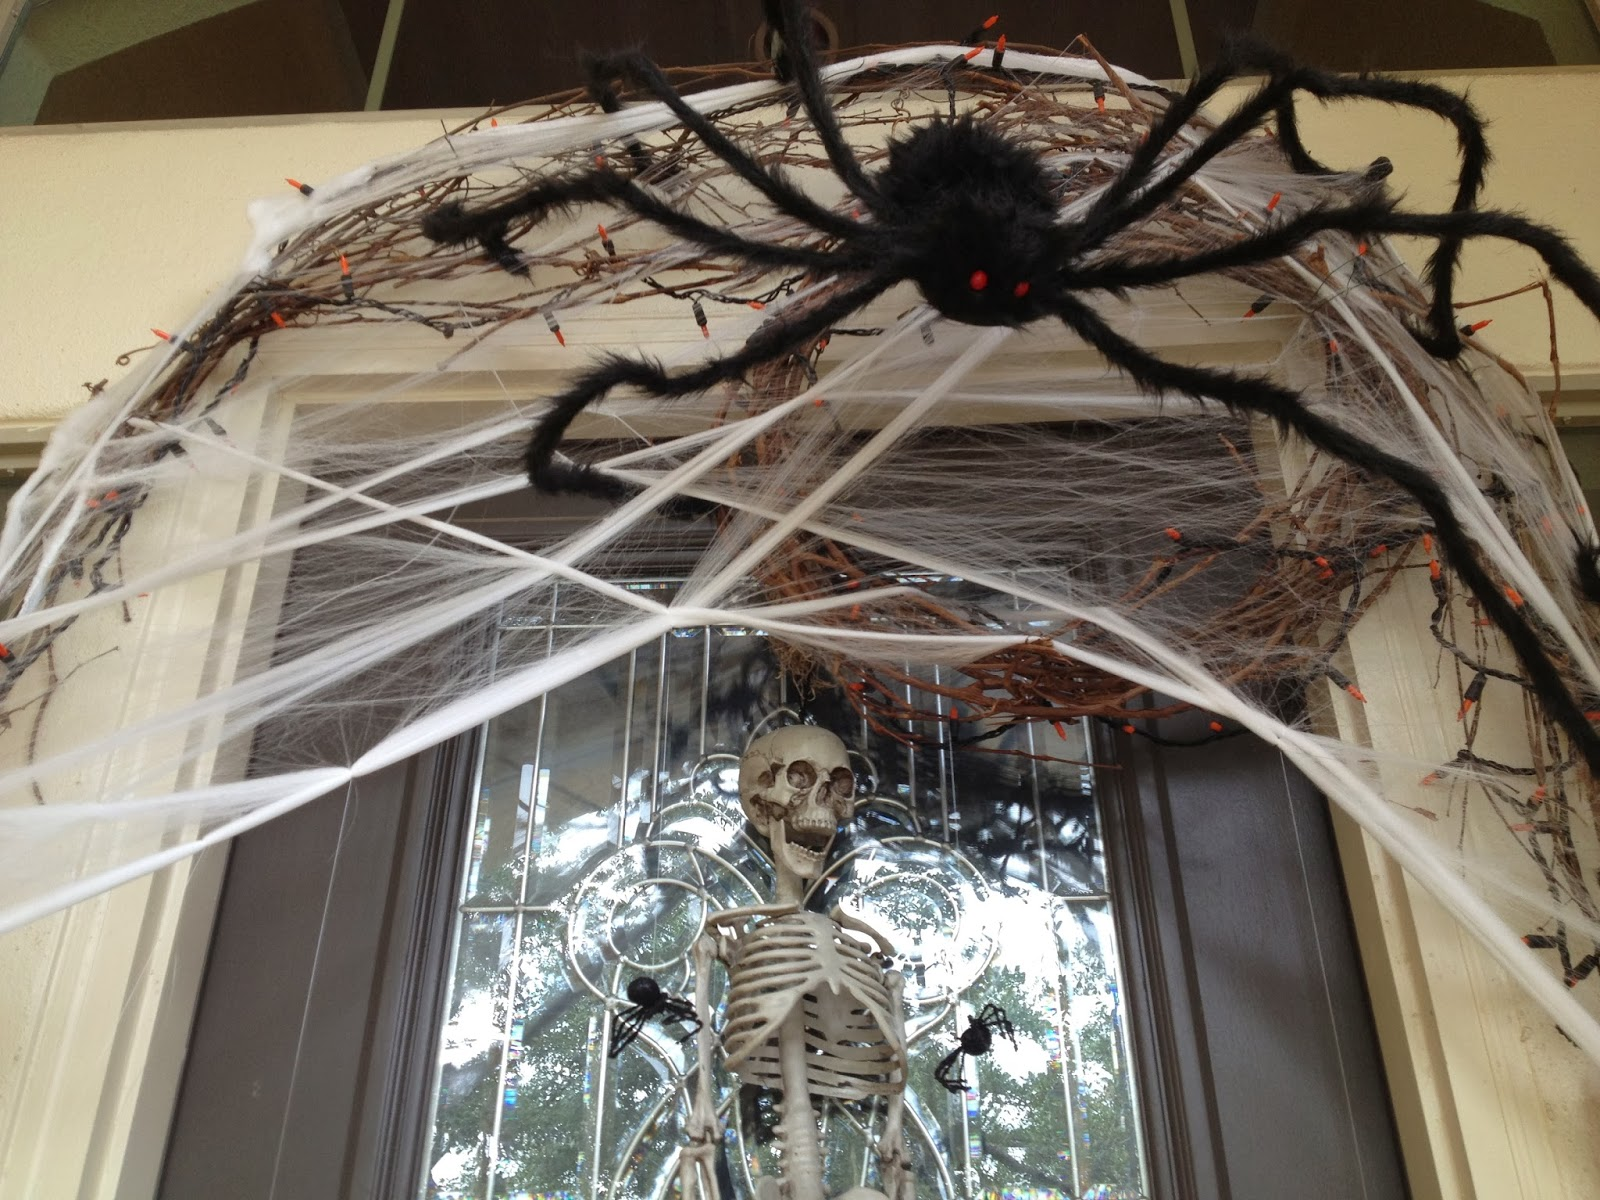 decorations-spooky-spider-web-and-skull-in-glass-frame-front-door-as-marvelous-outdoor-halloween-decoration-ideas-attractive-outside-halloween-decorating-ideas